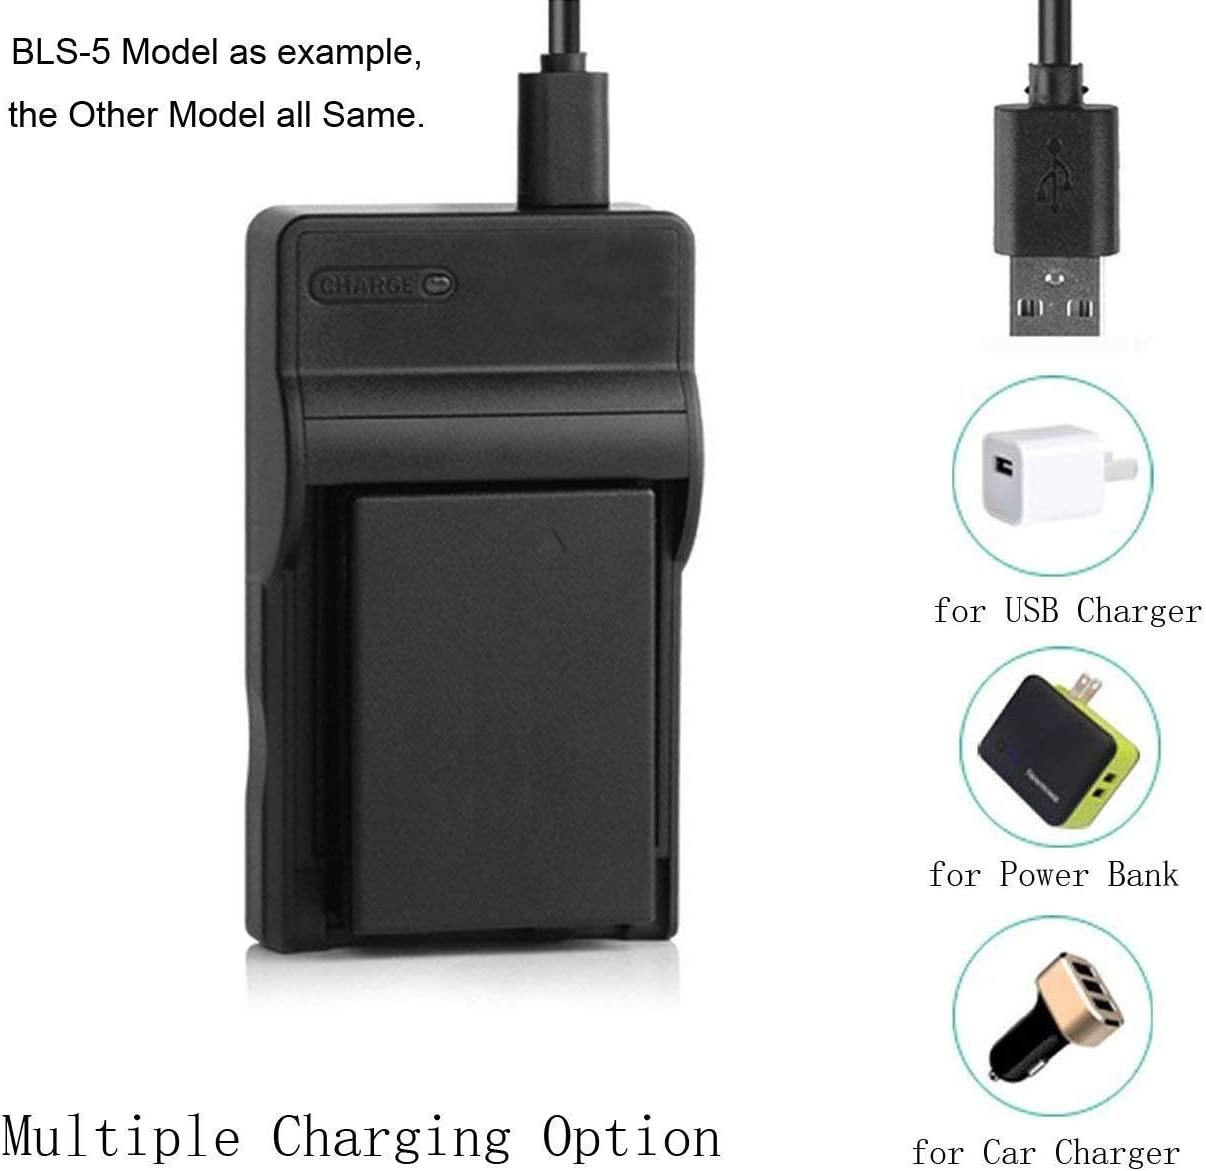 VP-D452Bi Battery Charger for Samsung VP-D451i VP-D454i Digital Camcorder VP-D453i